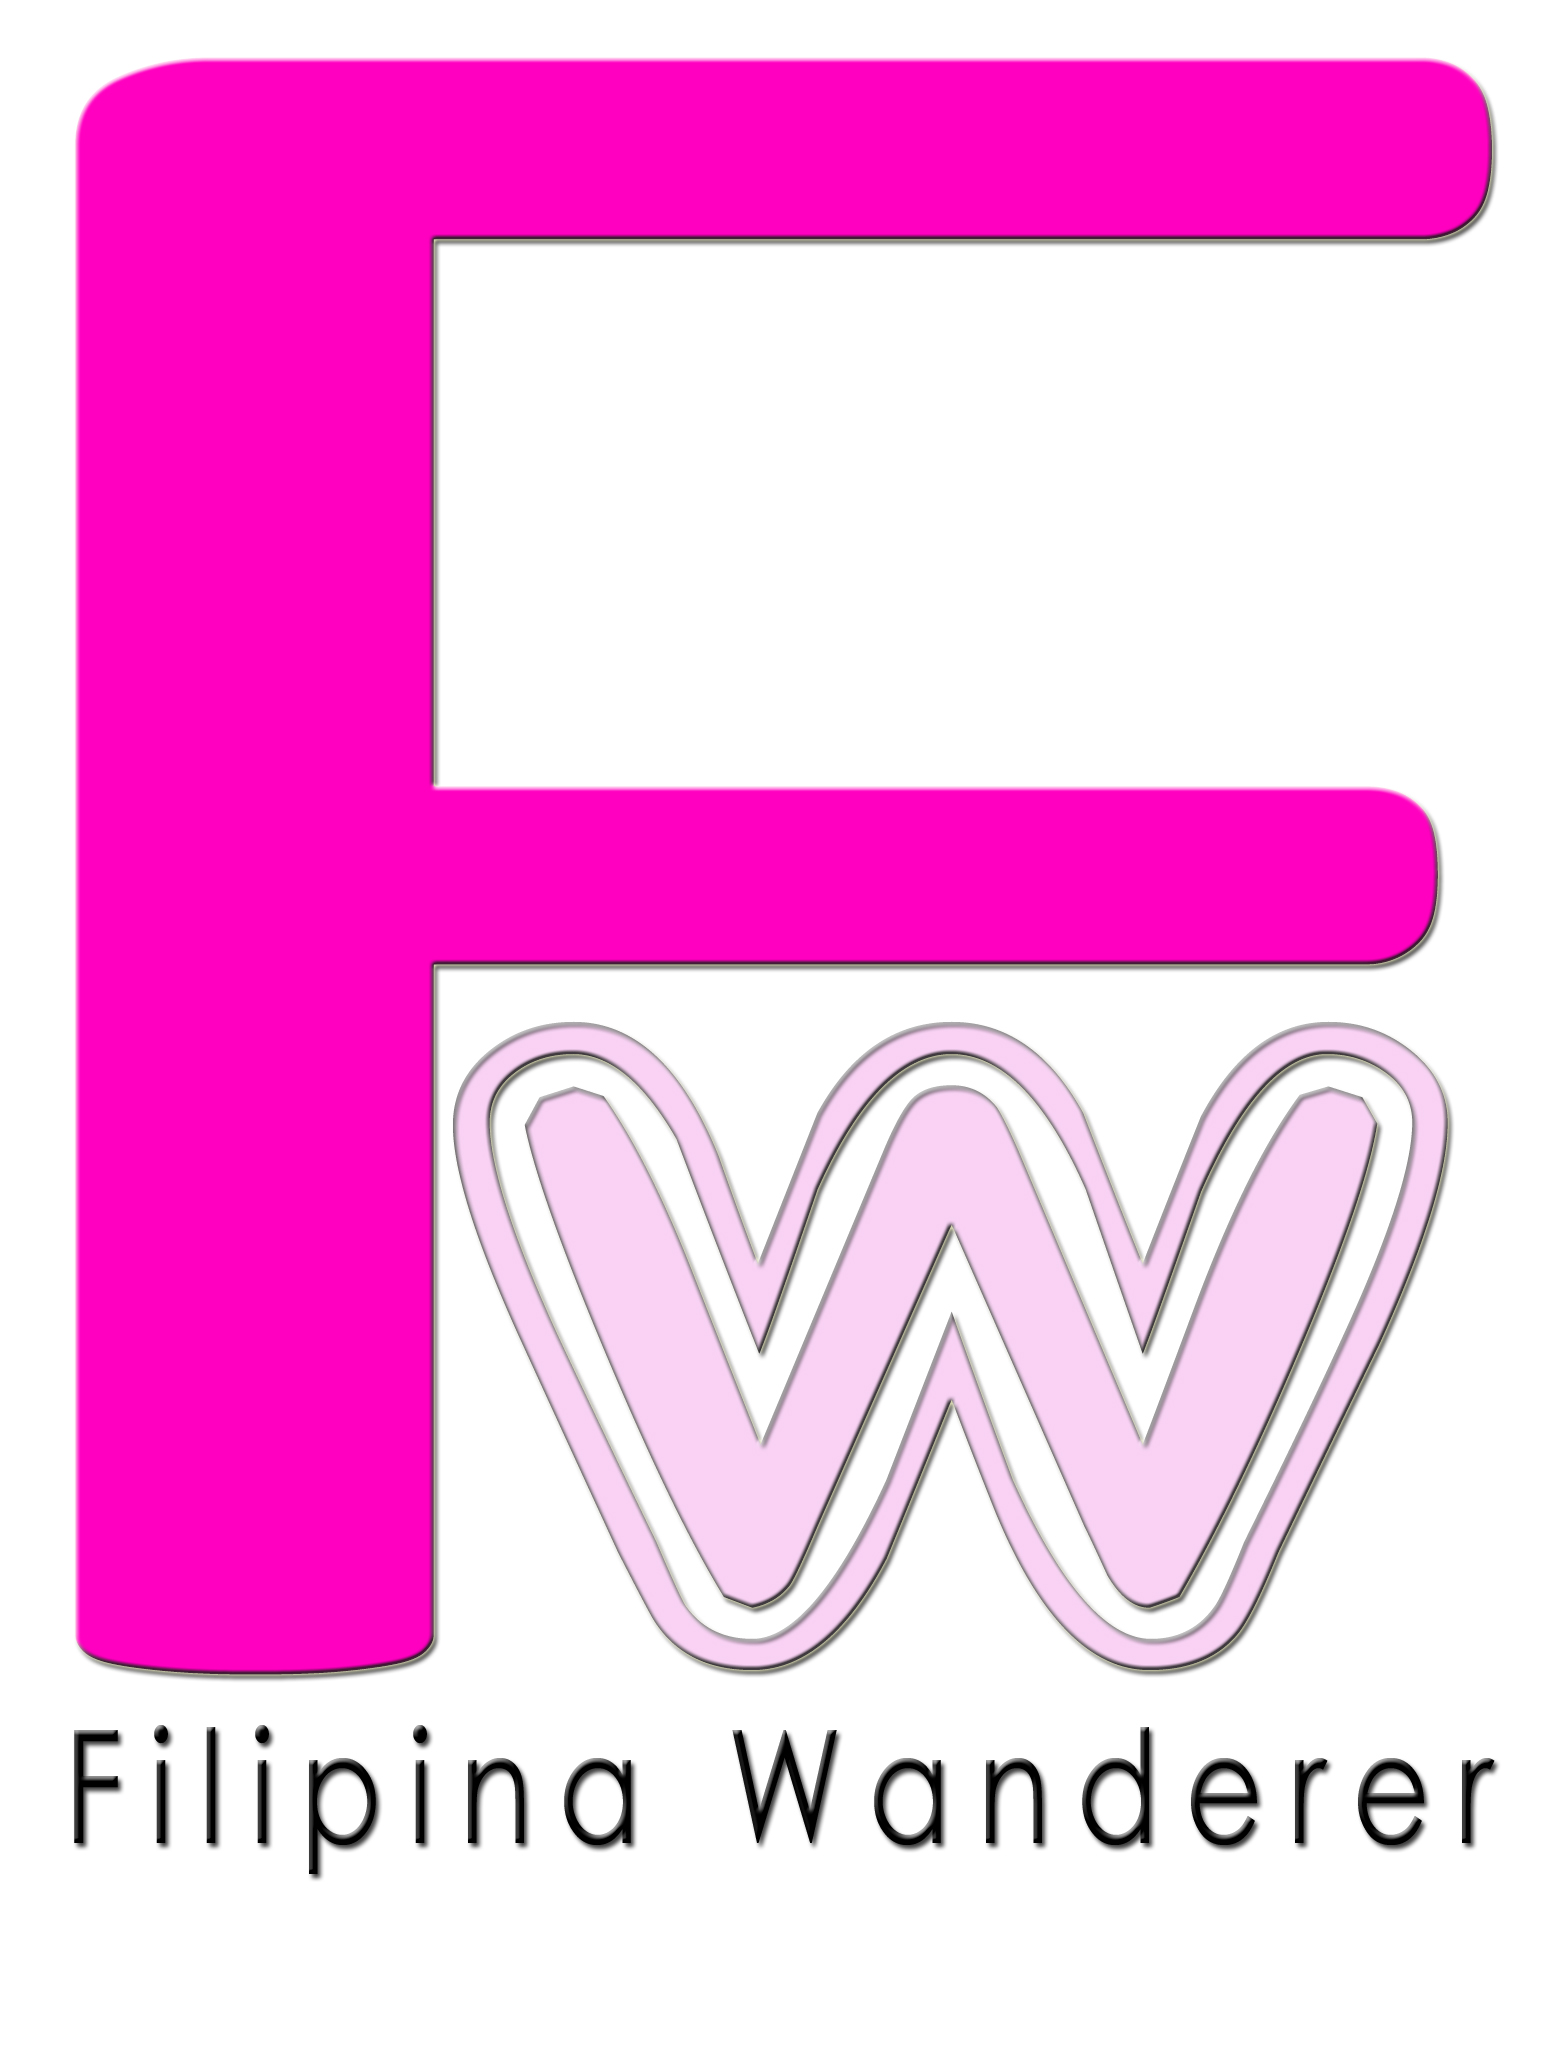 Filipina Wanderer